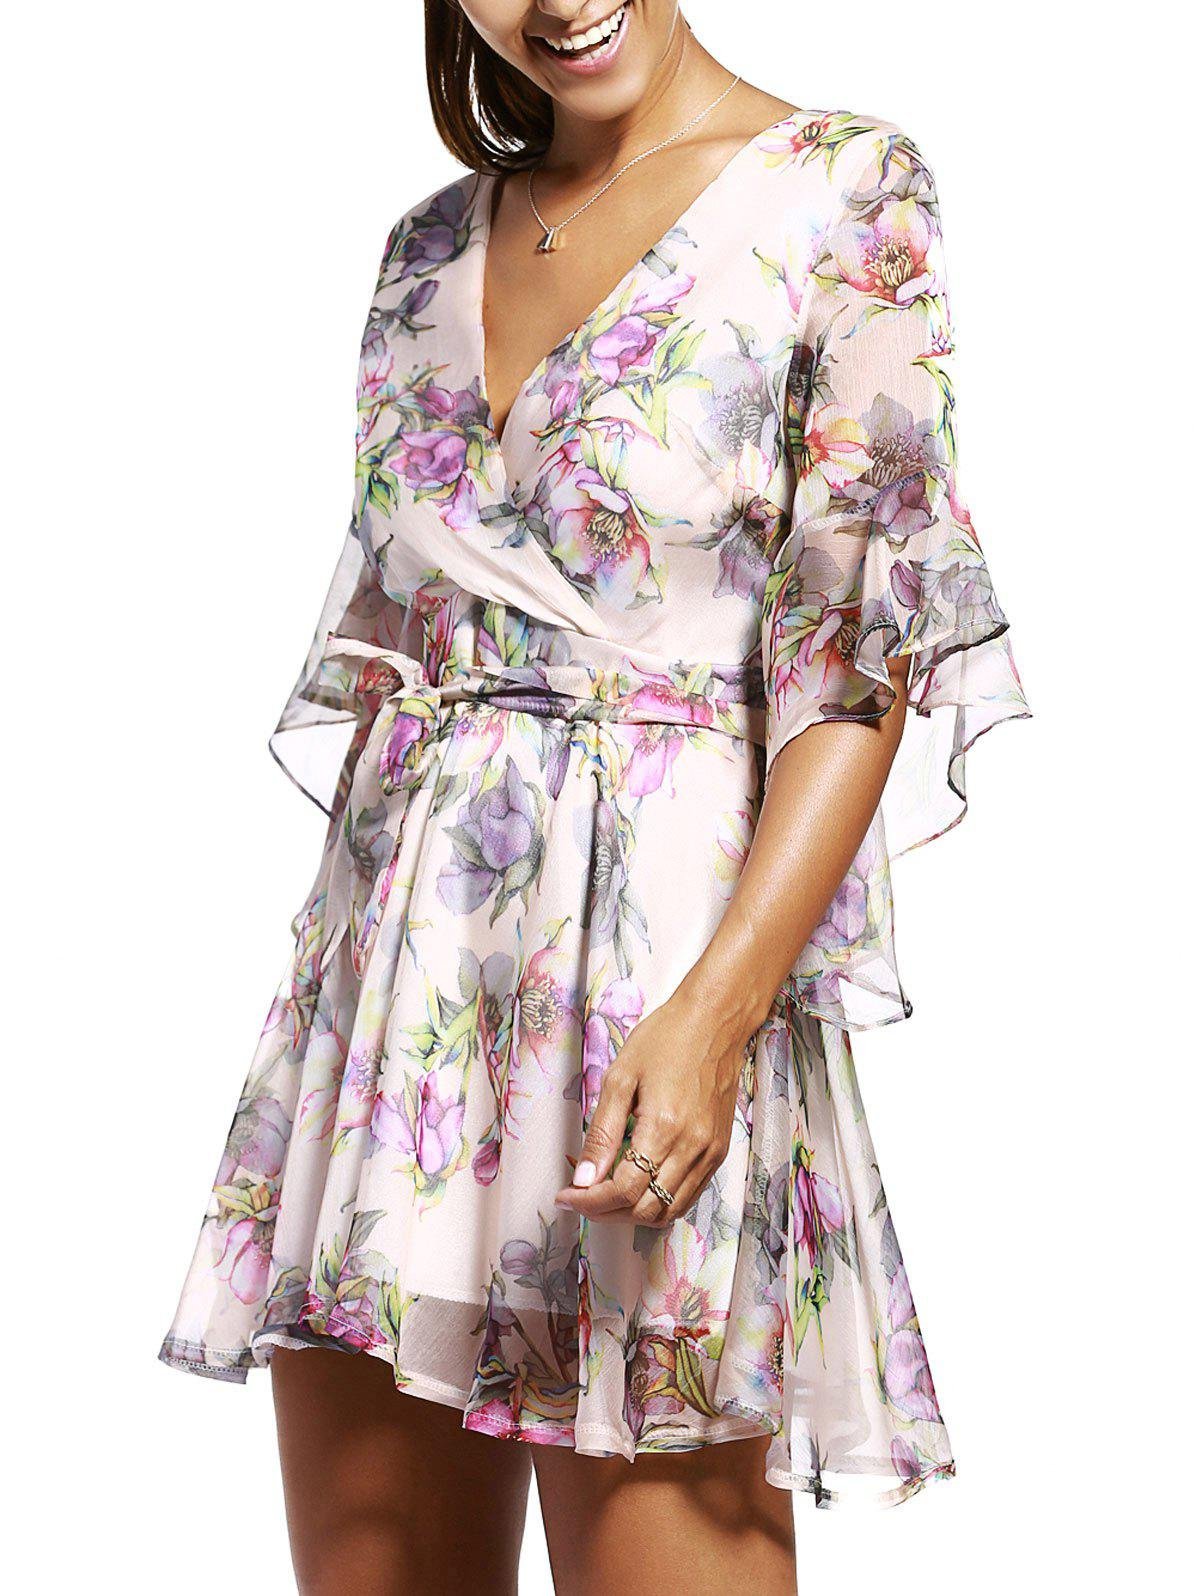 Women's Graceful Flare Sleeve V Neck Floral Print Dress - APRICOT ONE SIZE(FIT SIZE XS TO M)